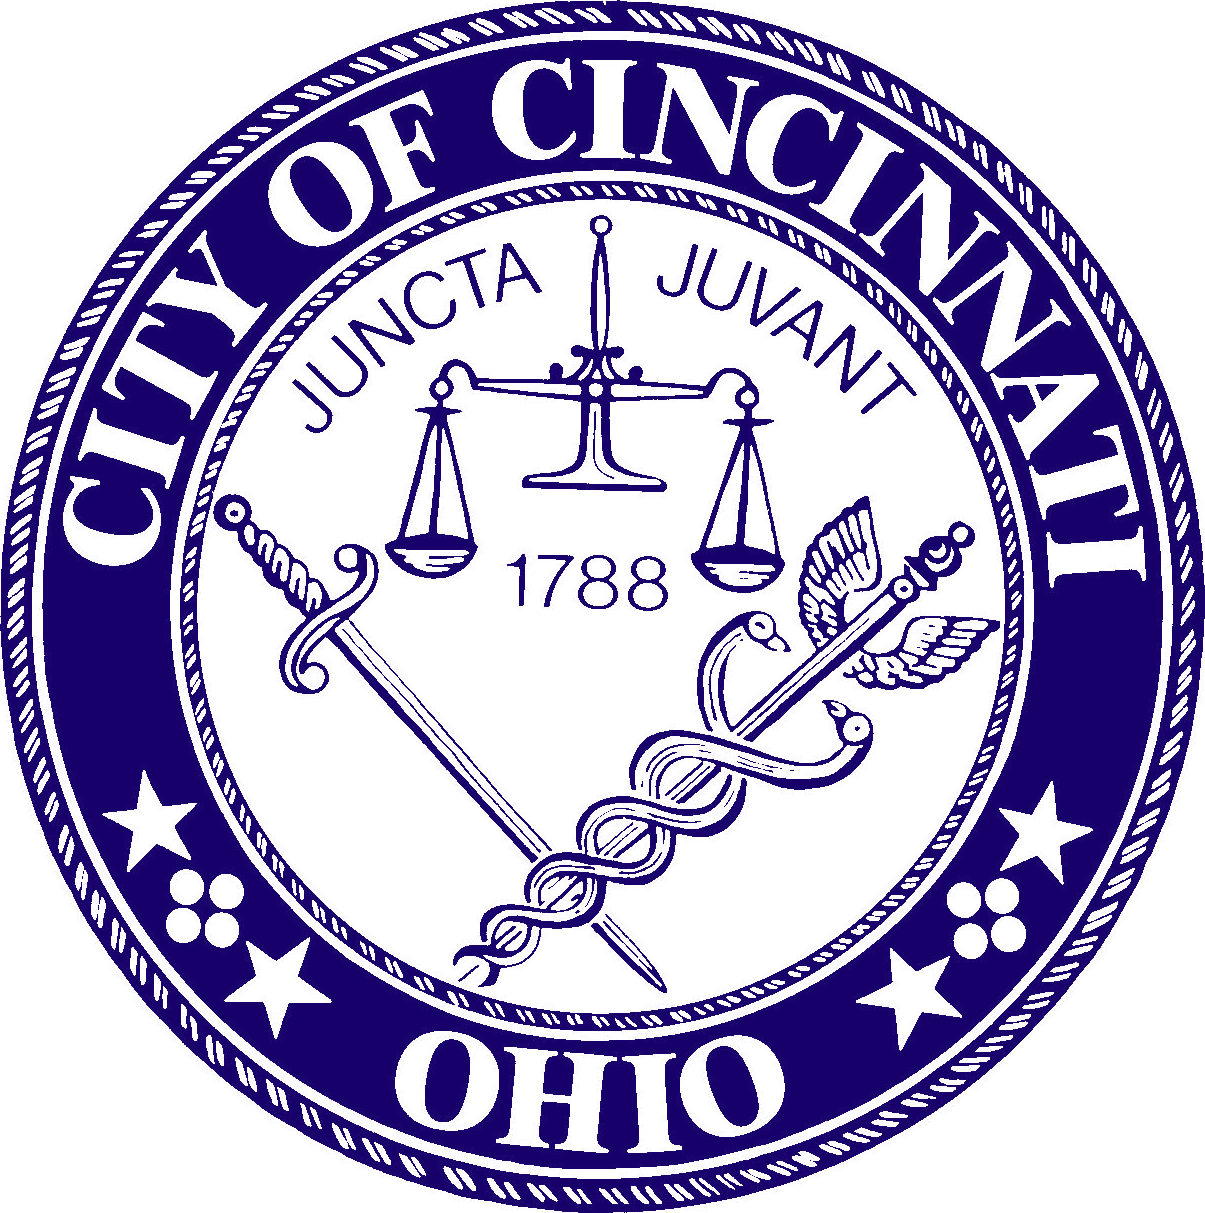 cincinnati familypedia fandom powered by wikia Oakley C Wire seal of the city of cincinnati ohio